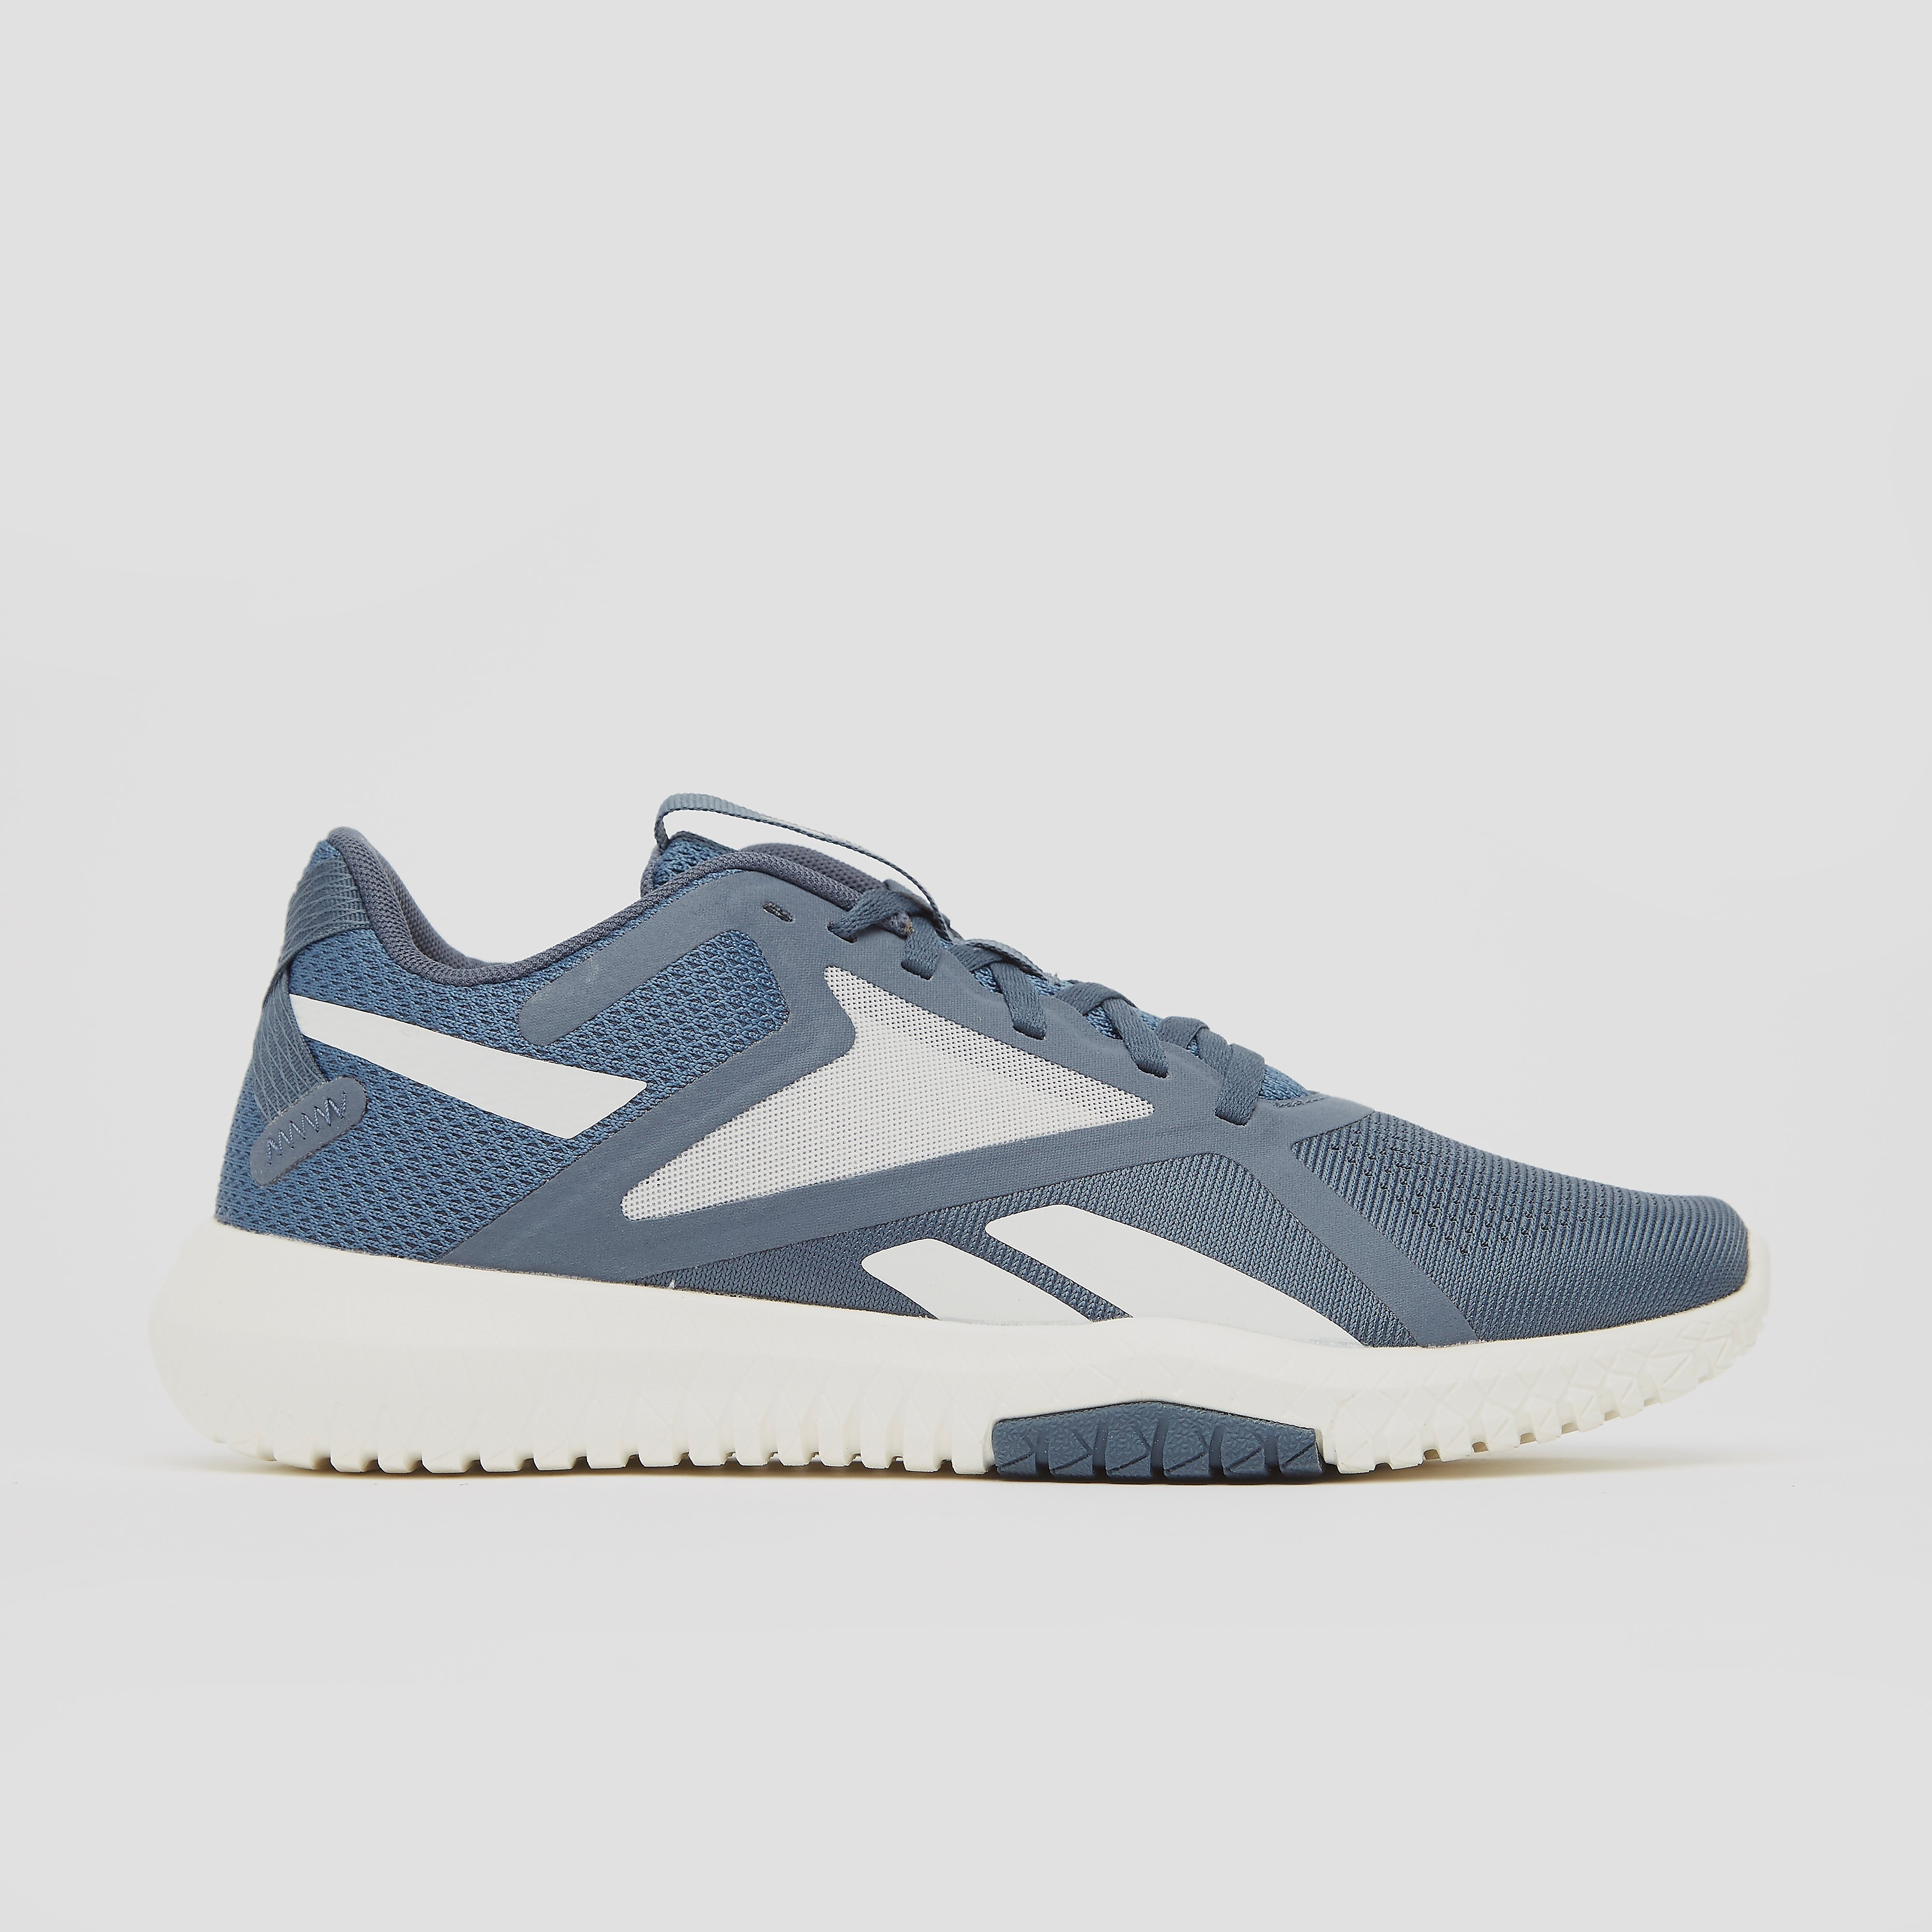 REEBOK Flexagon force 2 sportschoenen blauw dames Dames